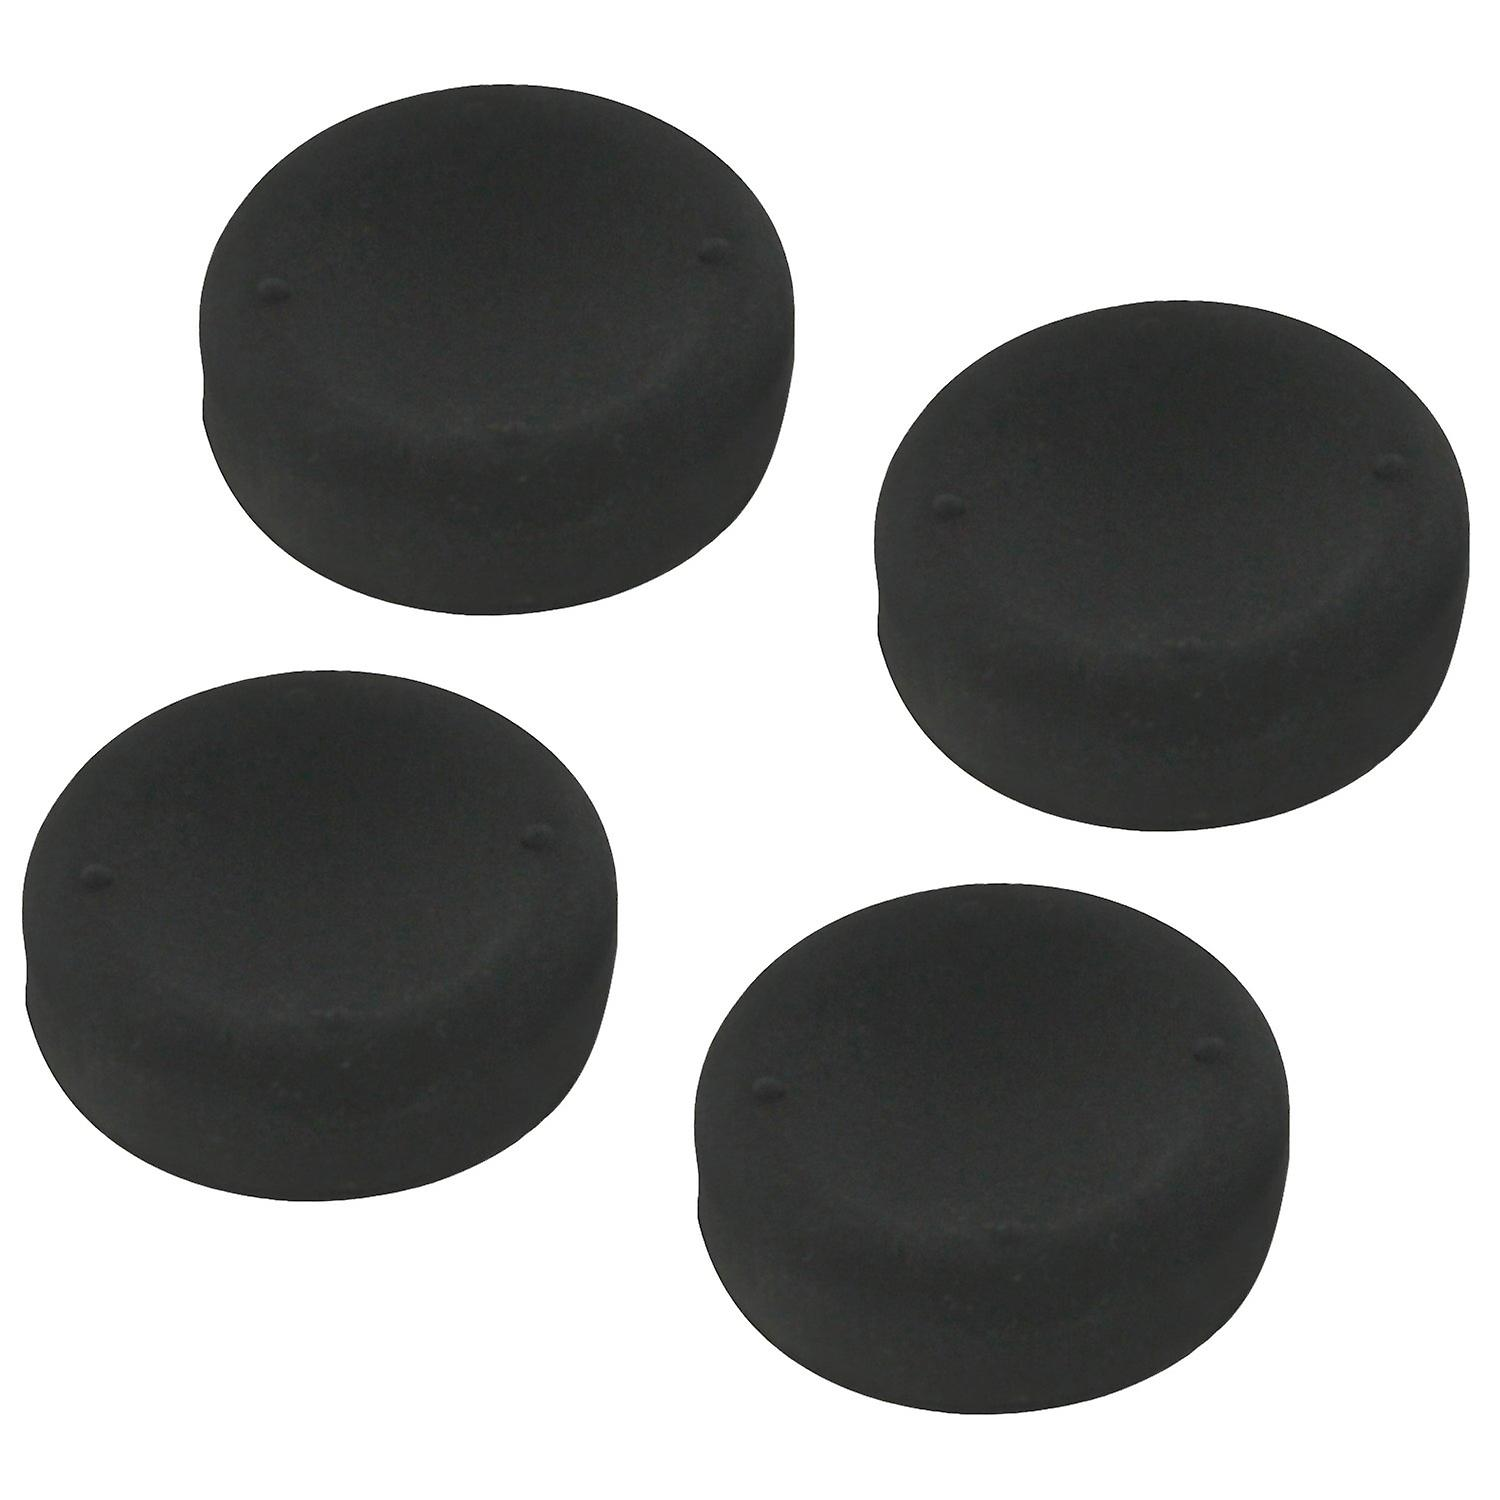 Concave soft silicone thumb grips for sony ps4 controller analog sticks - 4 pack black